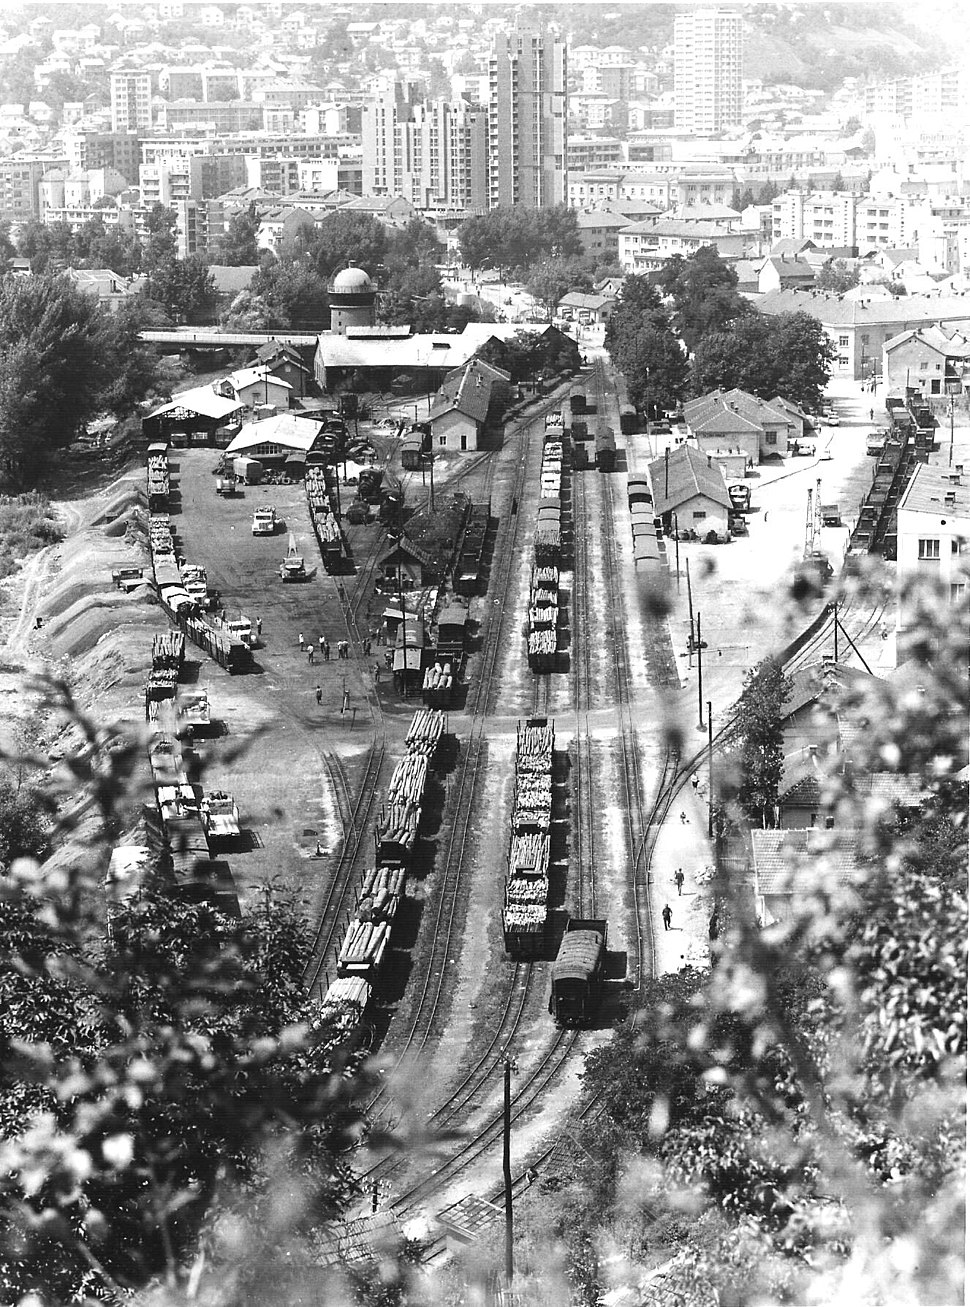 Narrow gauge train station in Titovo Užice, 31 July 1970